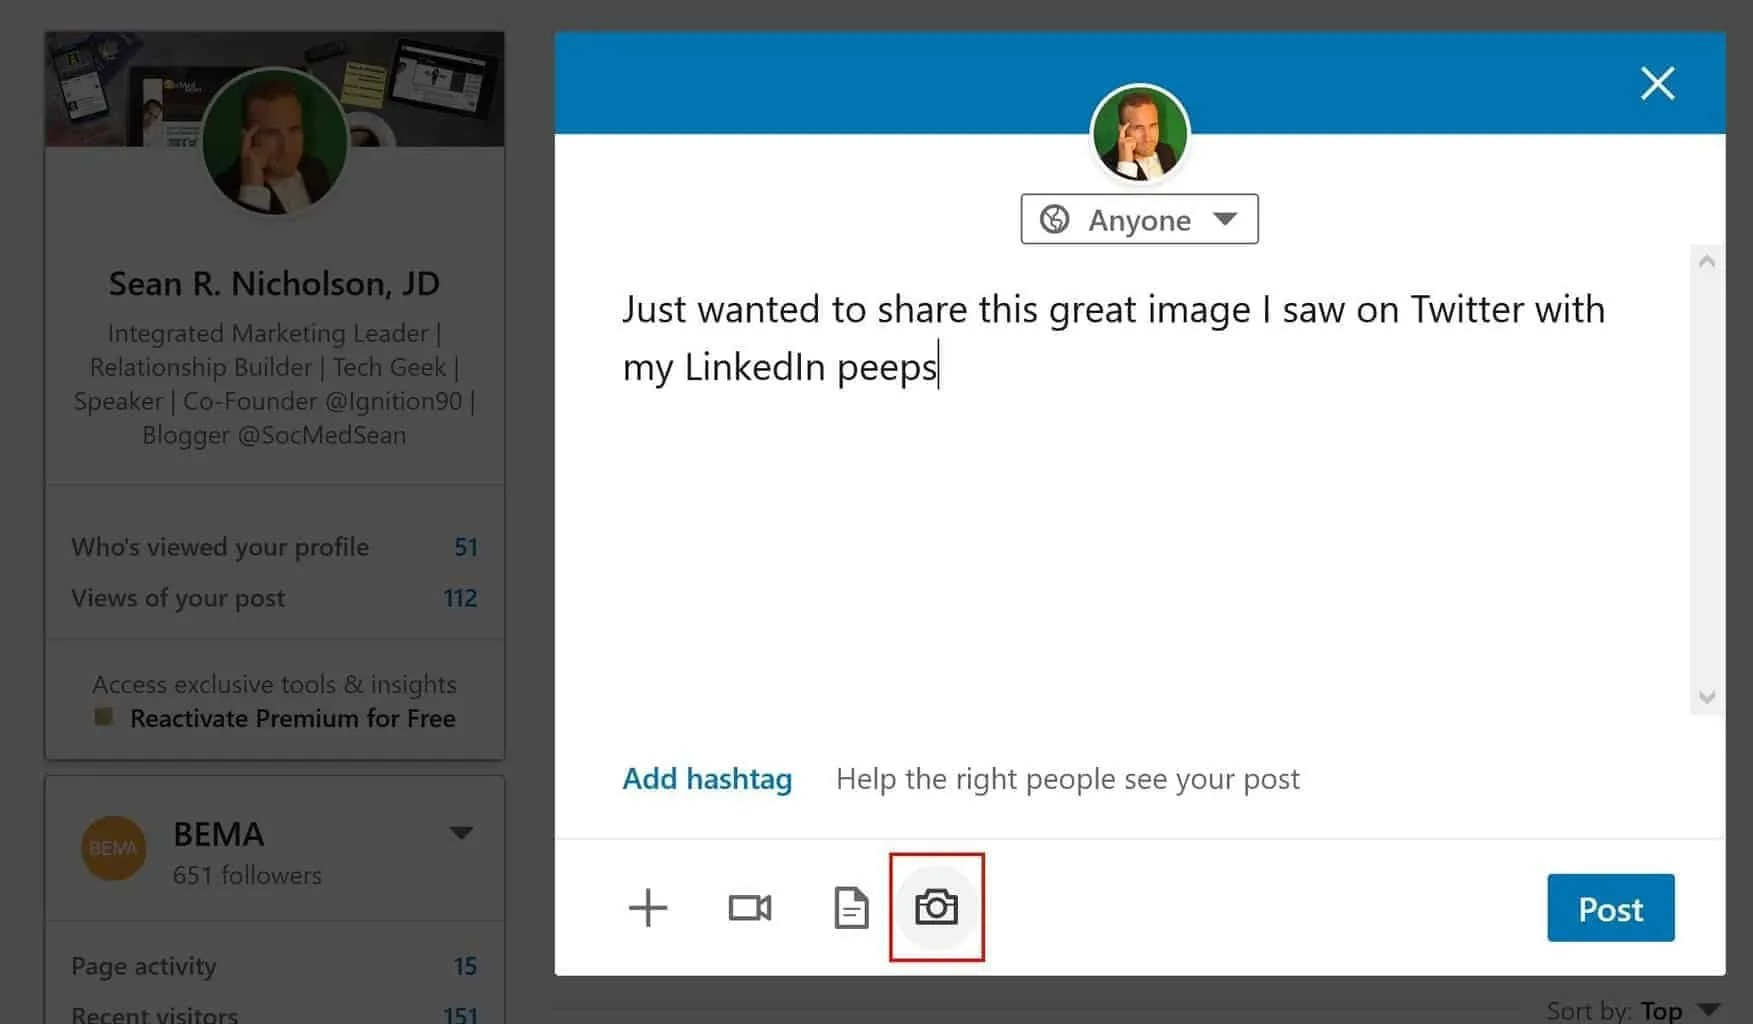 Click on the camera icon to share the image you saved from Twitter to your LinkedIn post